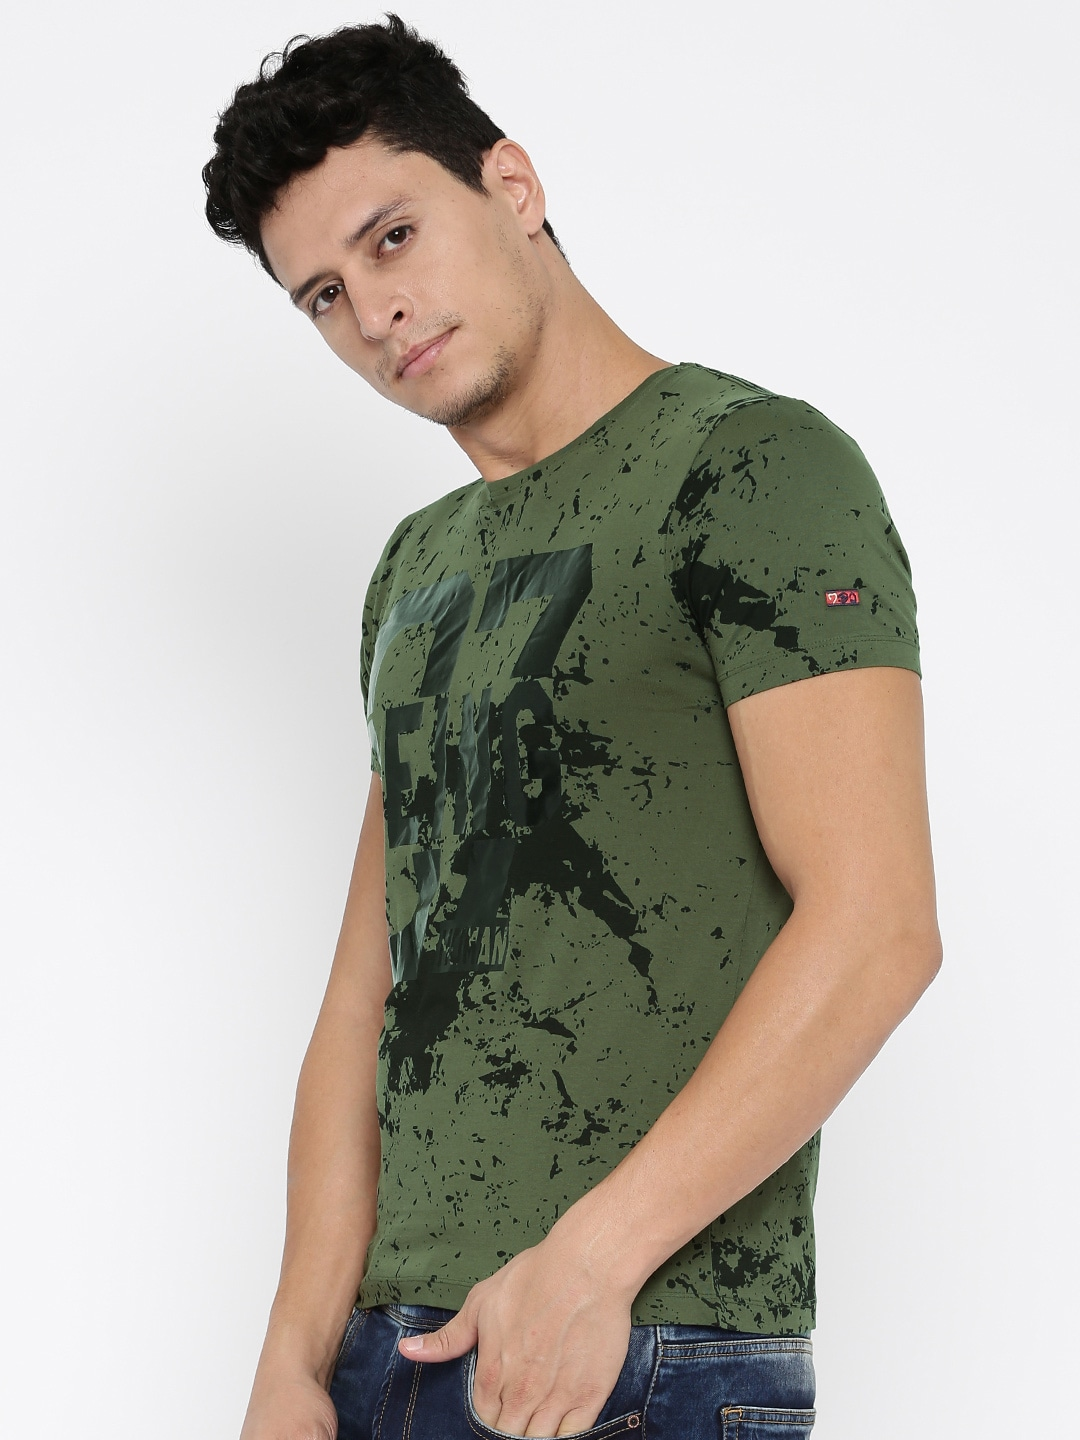 Design your own t shirt india cash on delivery - Design Your Own T Shirt India Cash On Delivery 76